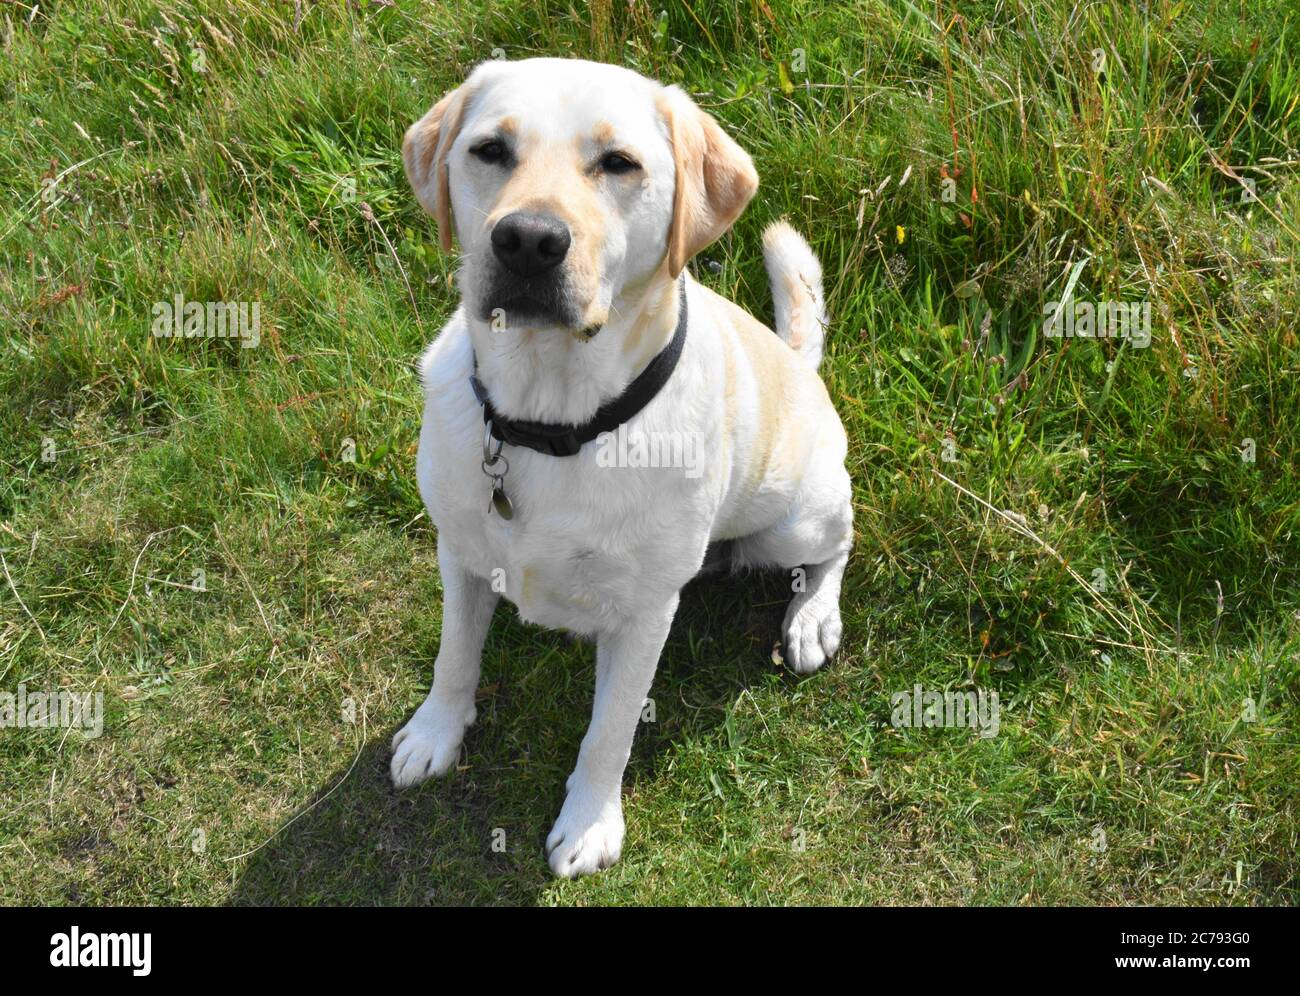 Golden Labrador Sitting Patiently On Grass Waiting For Instructions During Training Exercise Stock Photo Alamy